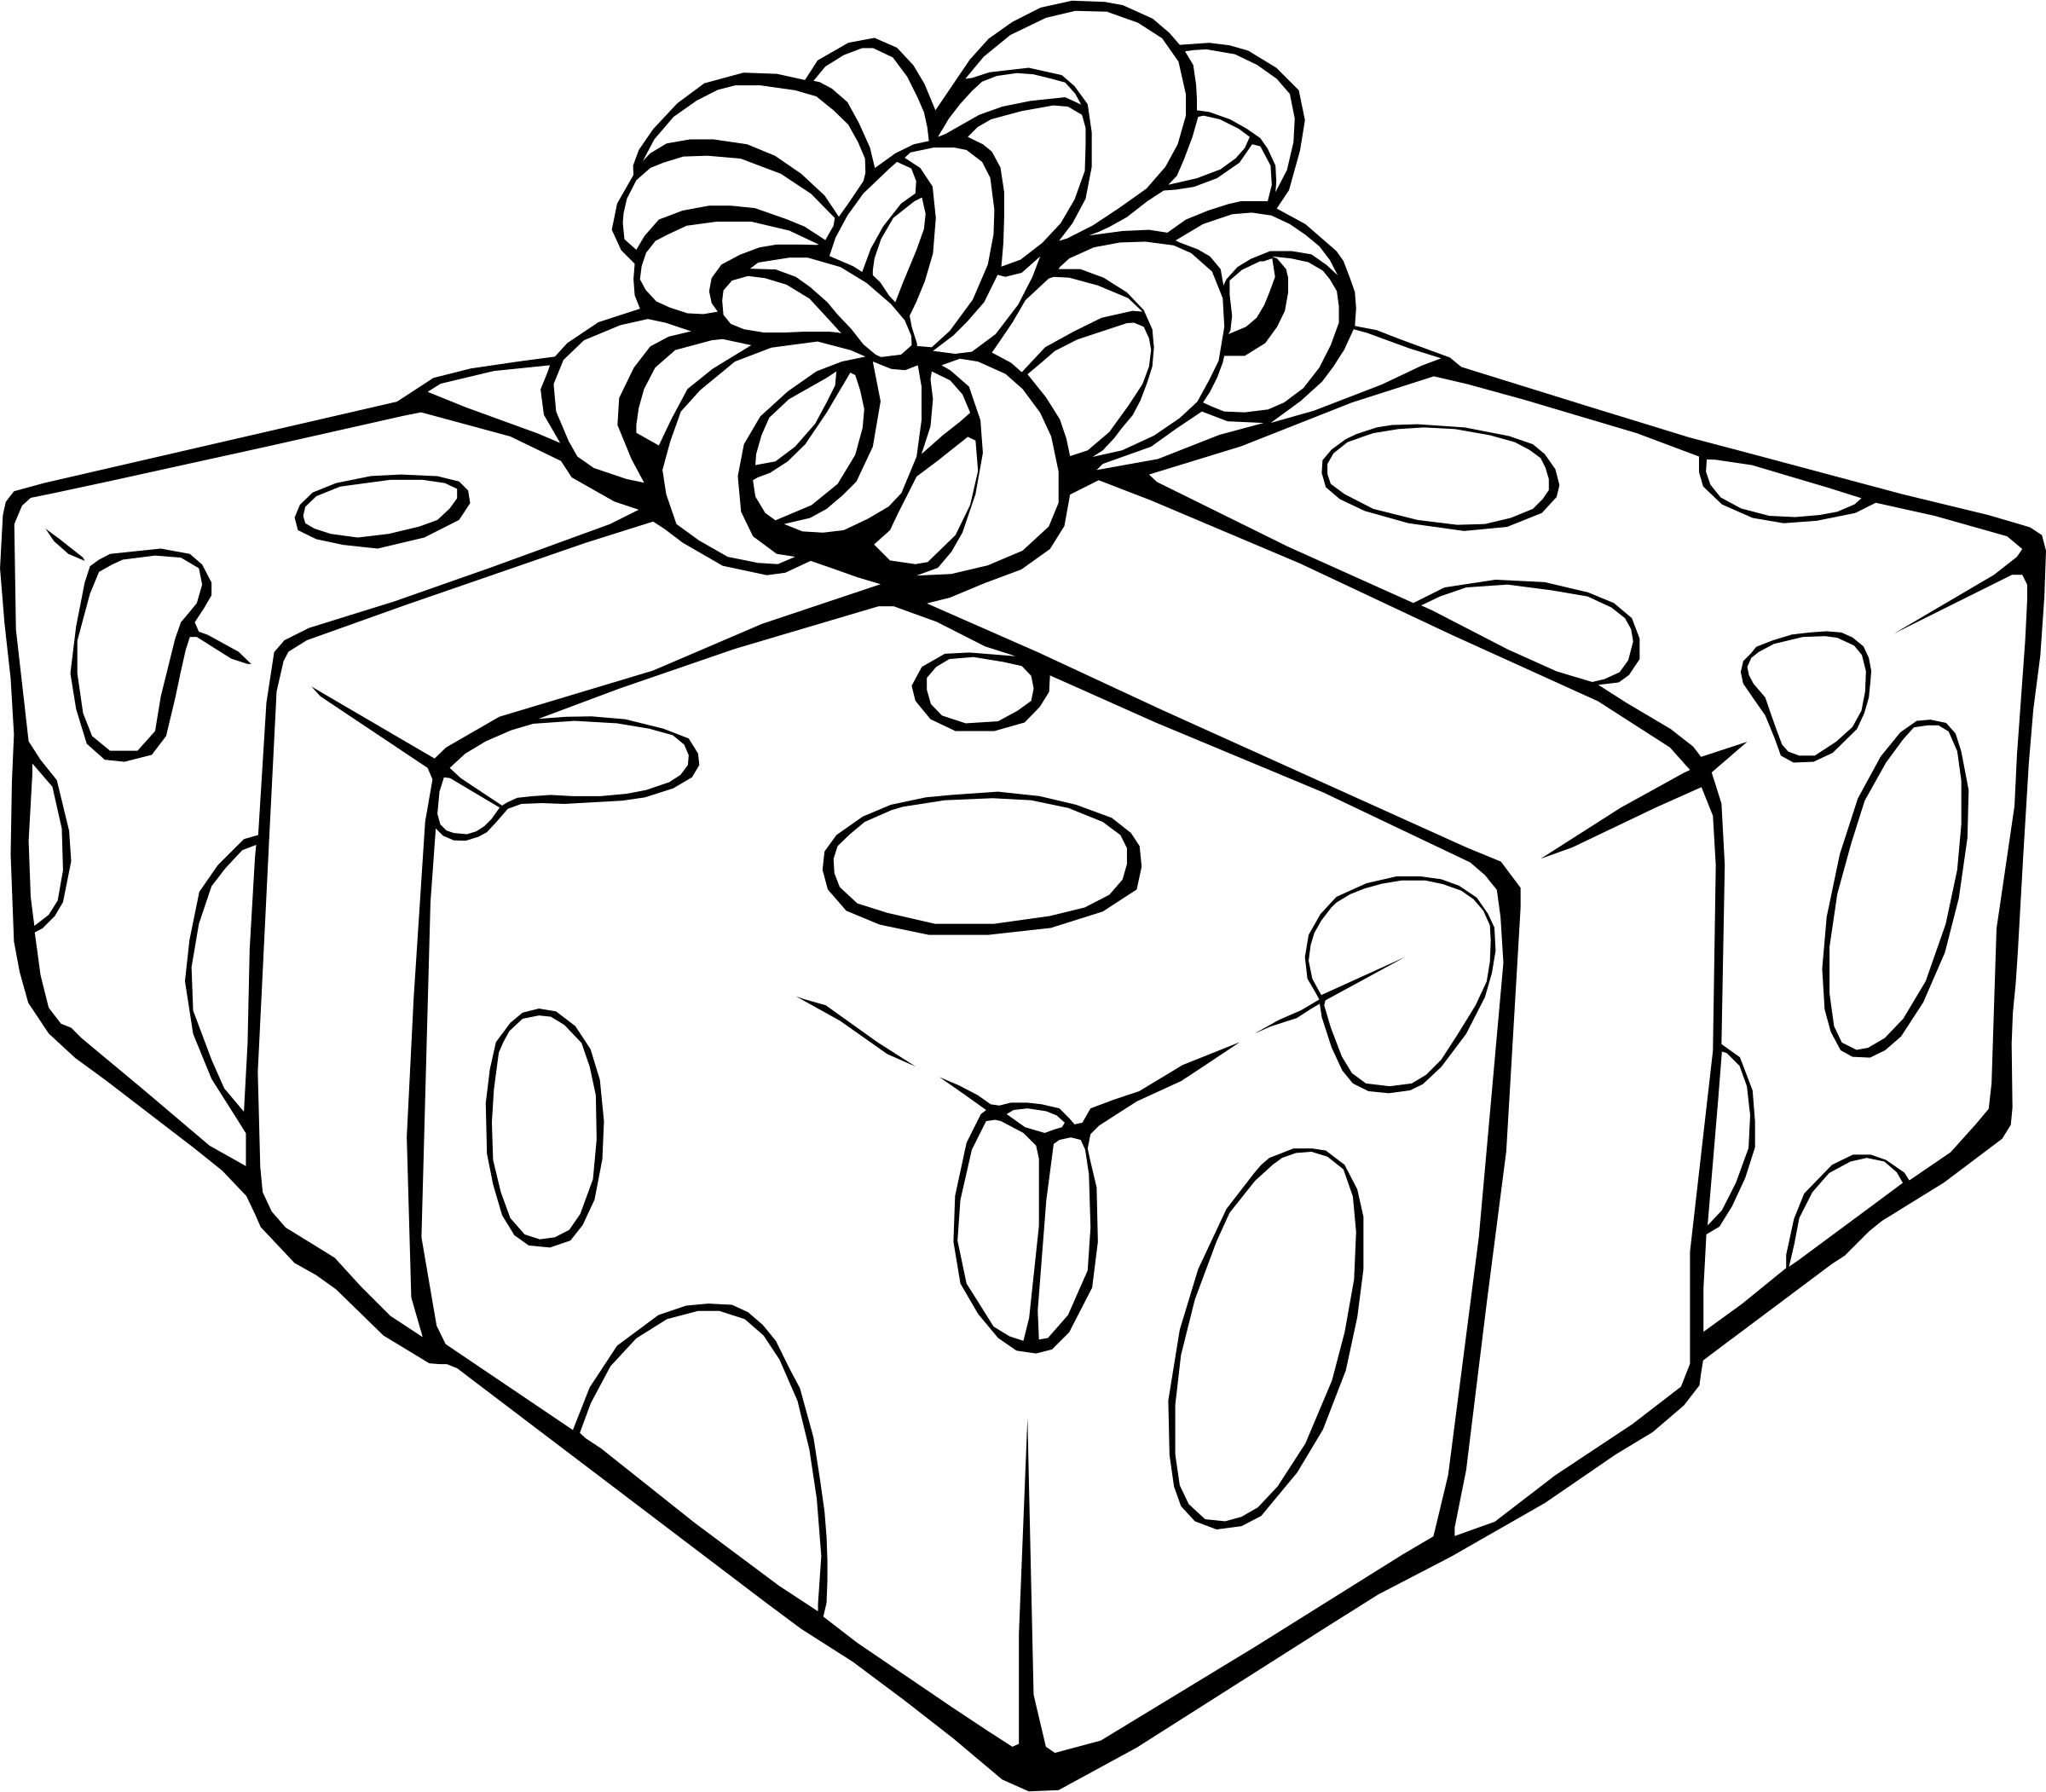 Uncategorized Black And White Coloring Pictures clipart gift coloring page page